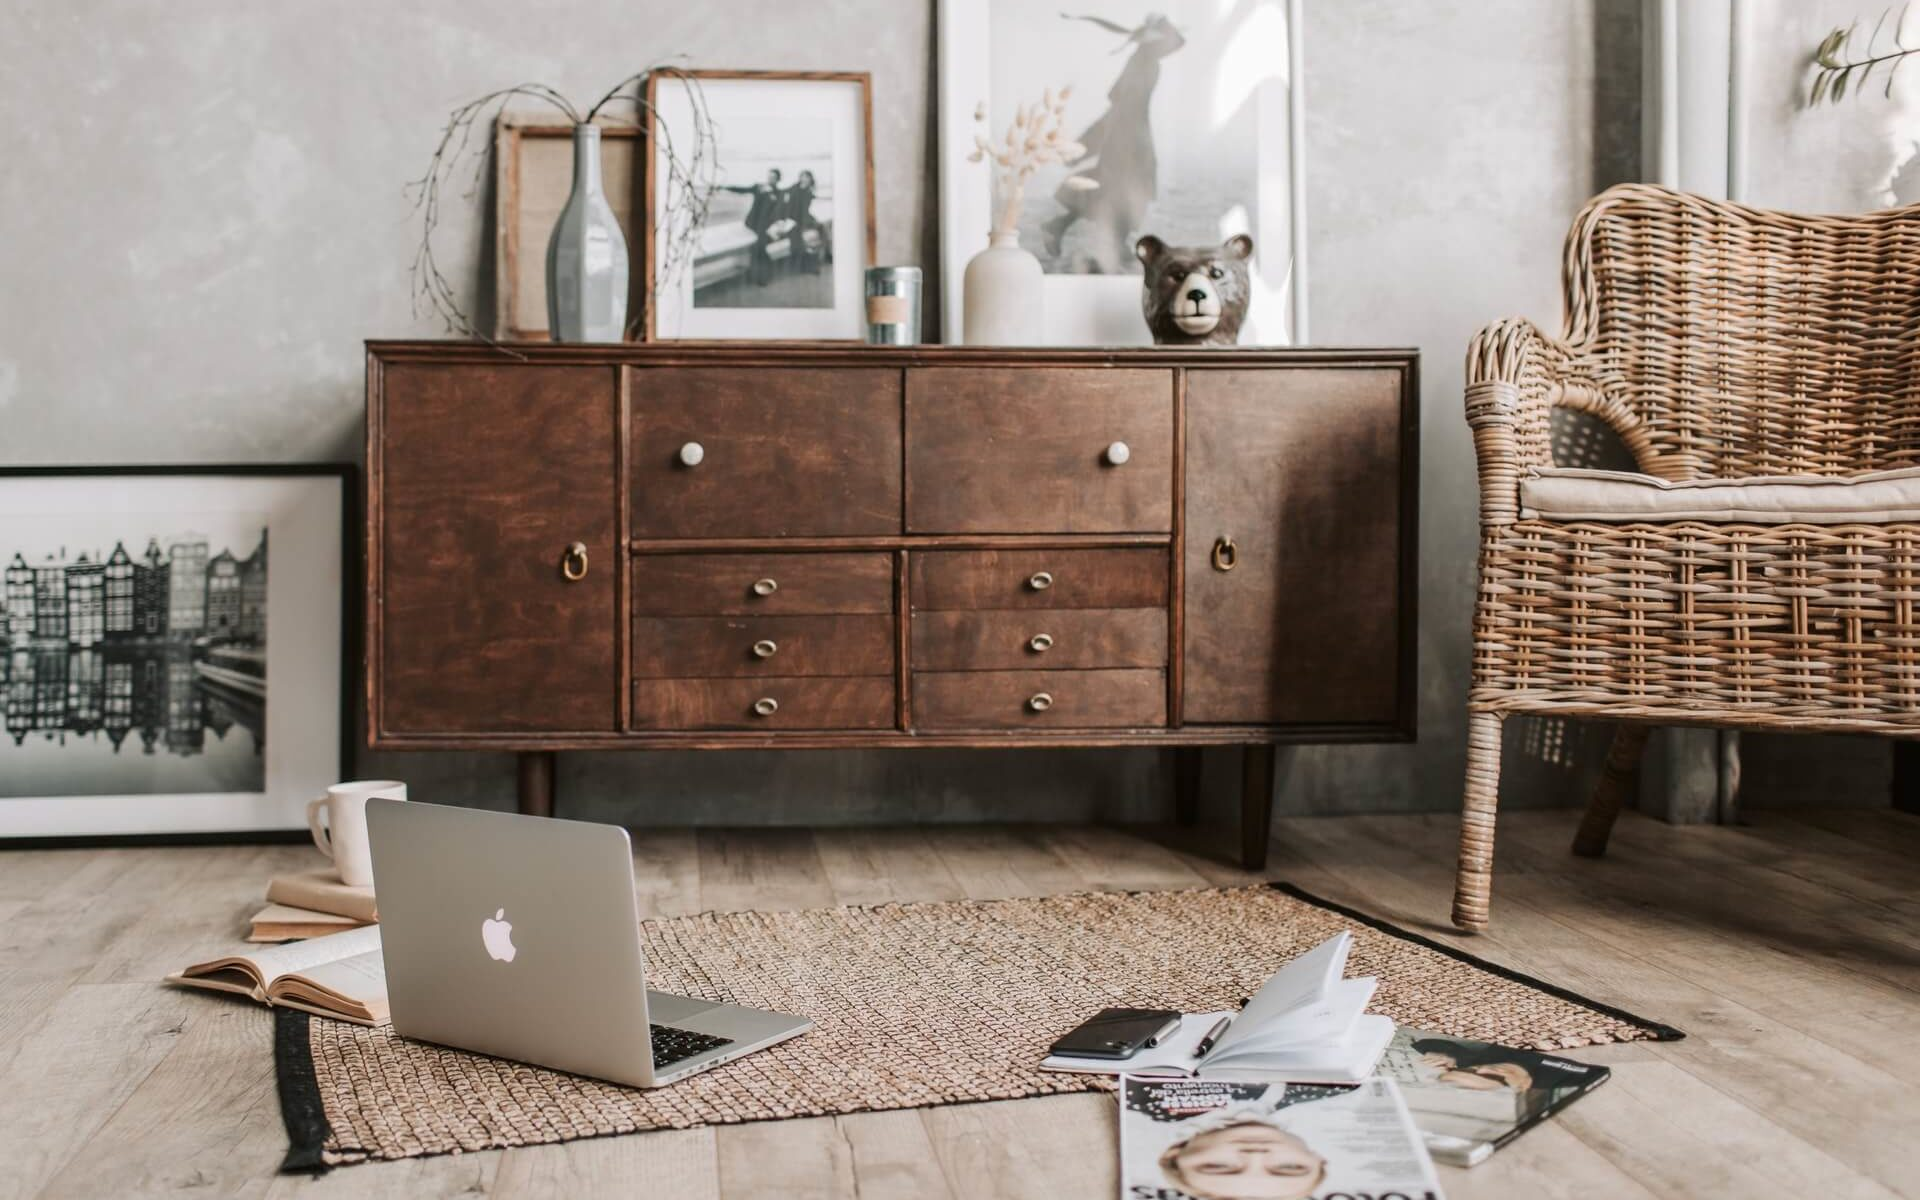 Decluttering motivation: 11 things to let go of in the living room